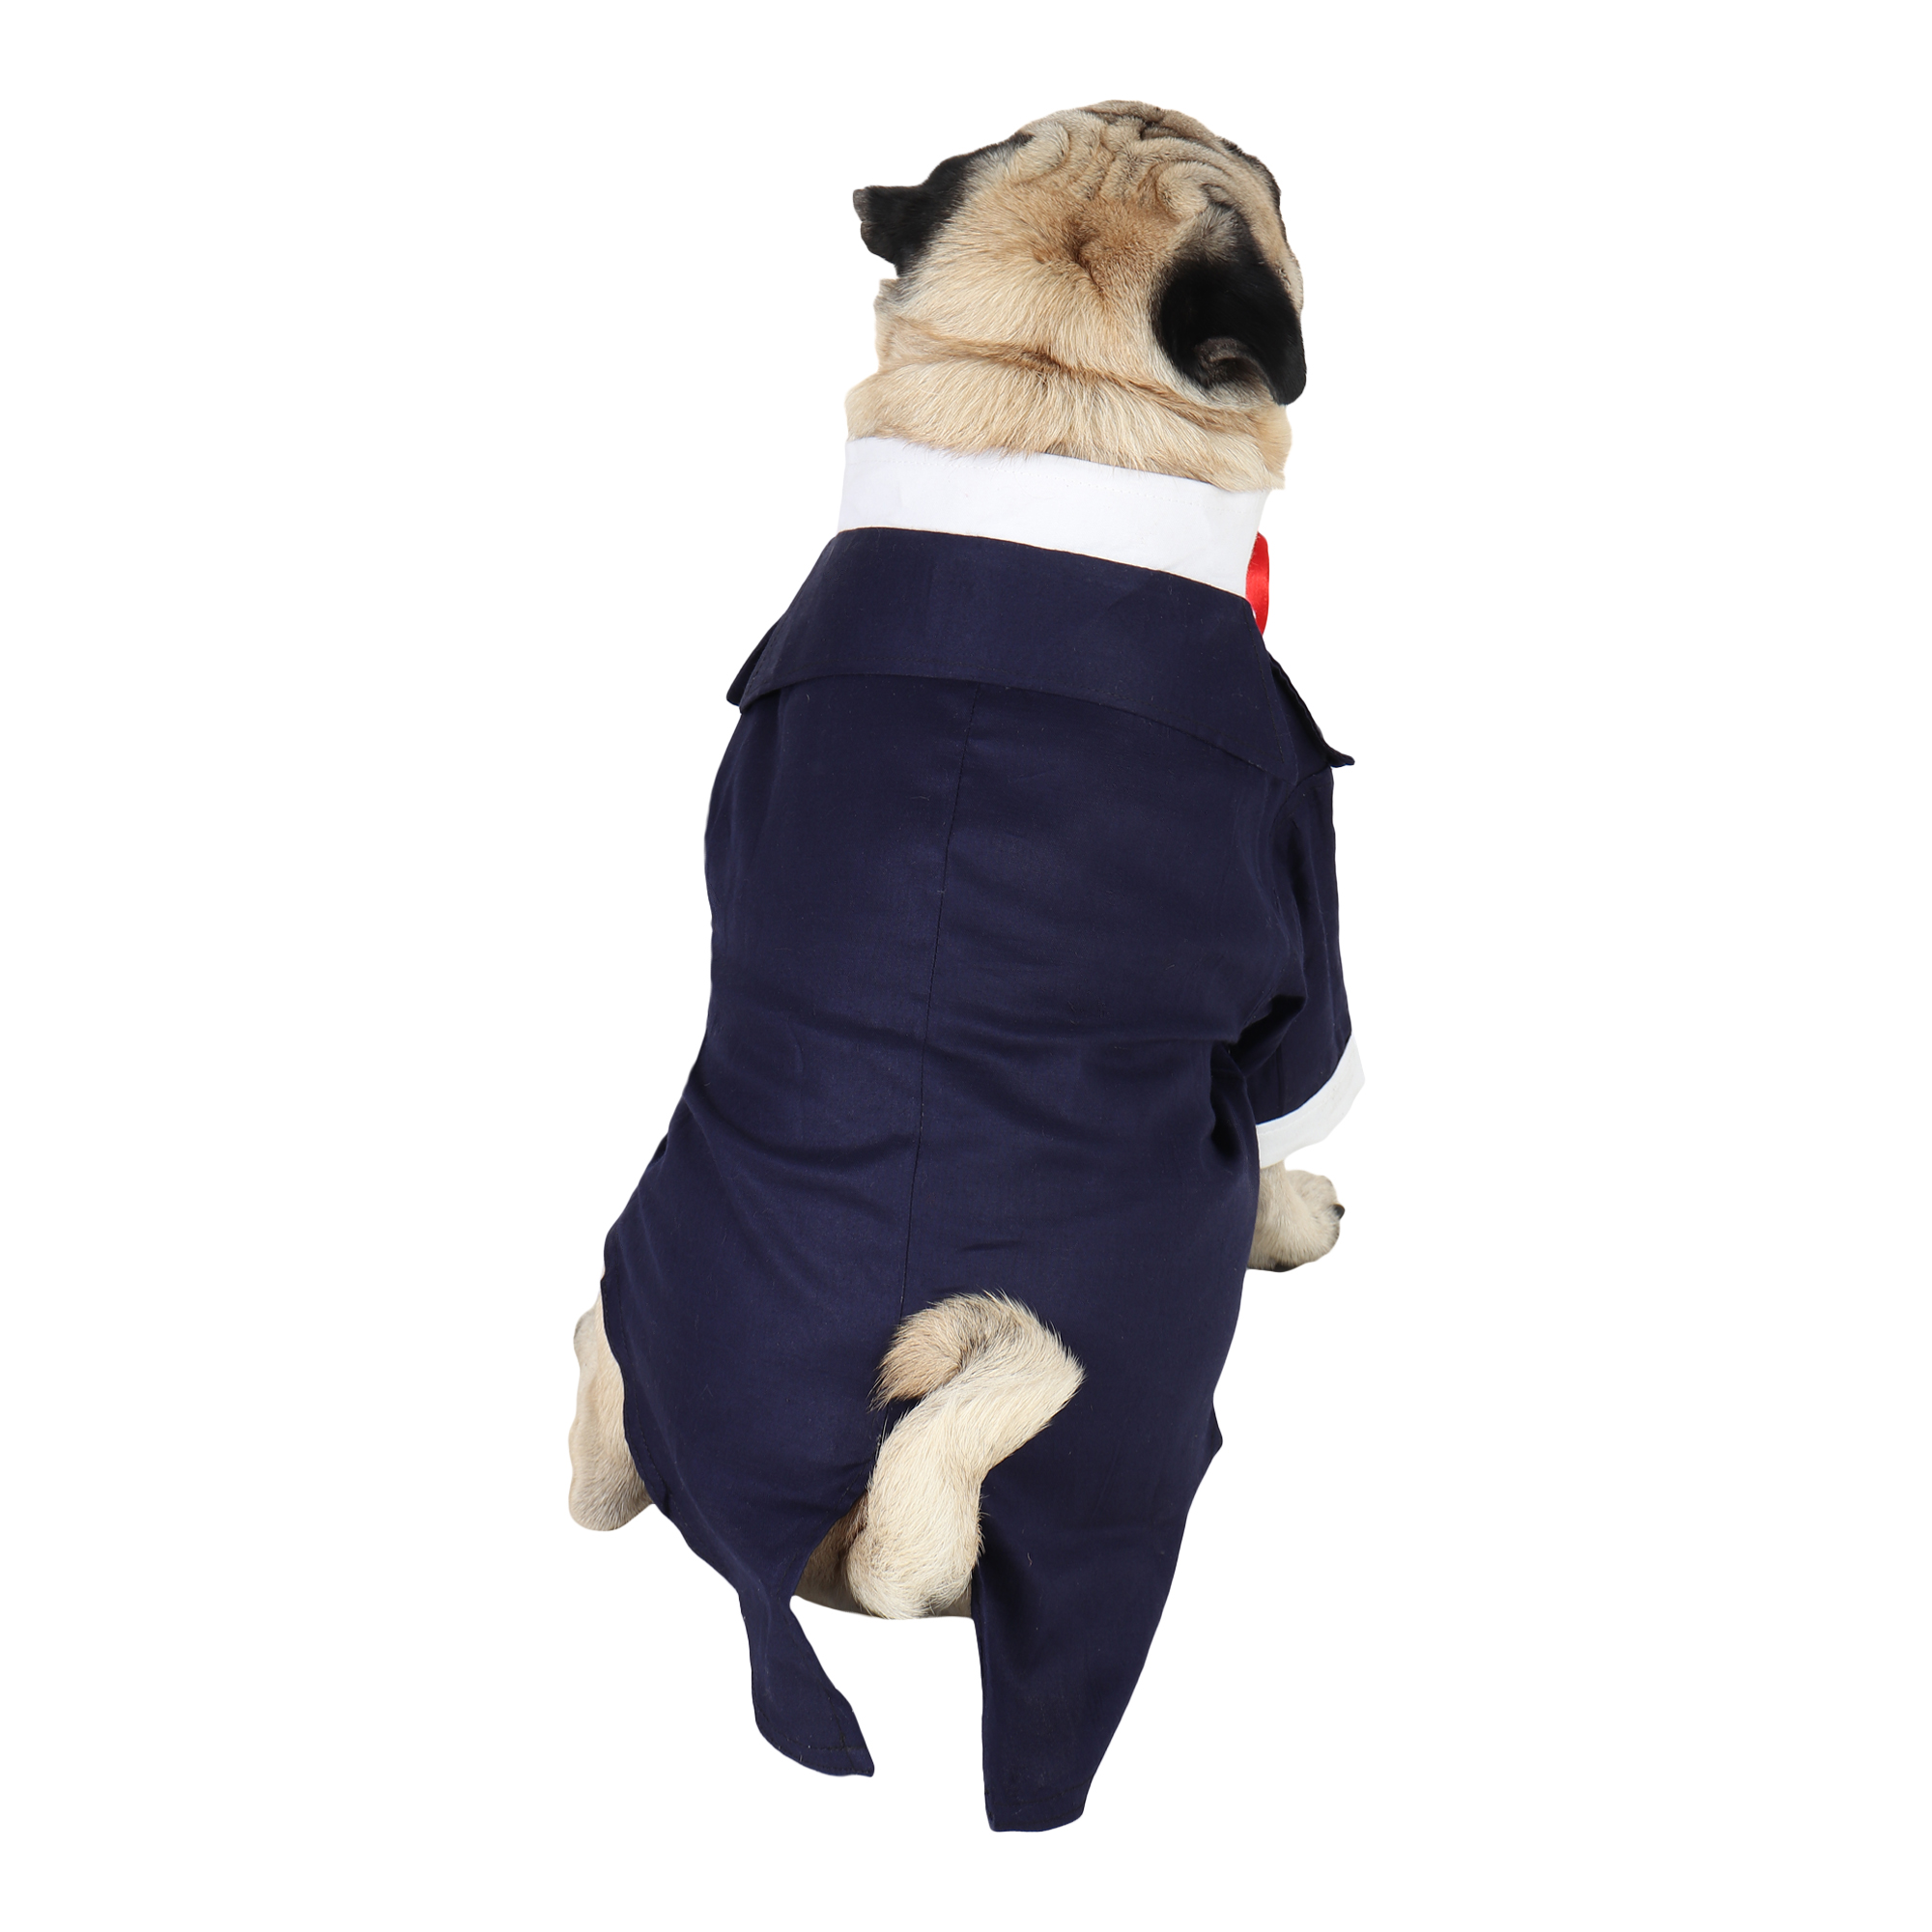 DOUGE COUTURE Party Tuxedo for Dogs (navy blue)